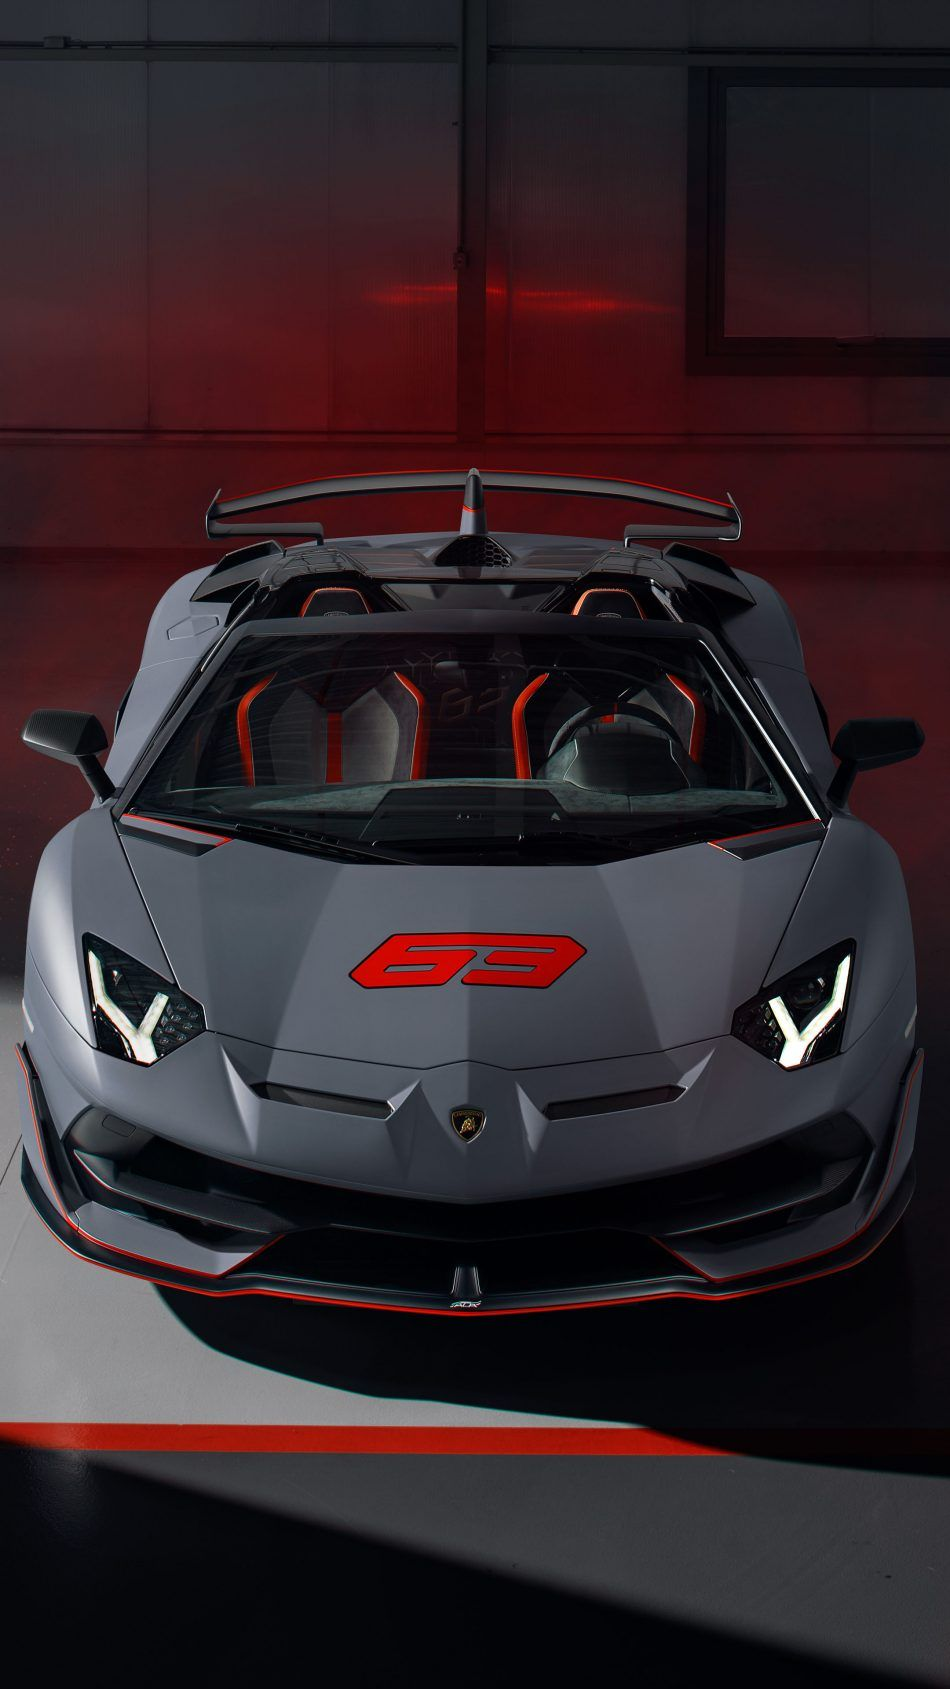 Lamborghini Aventador Svj 63 Roadster 2020 4k Ultra Hd Mobile Wallpaper Lamborghini Aventador Lamborghini Aventador Roadster Car Wallpapers